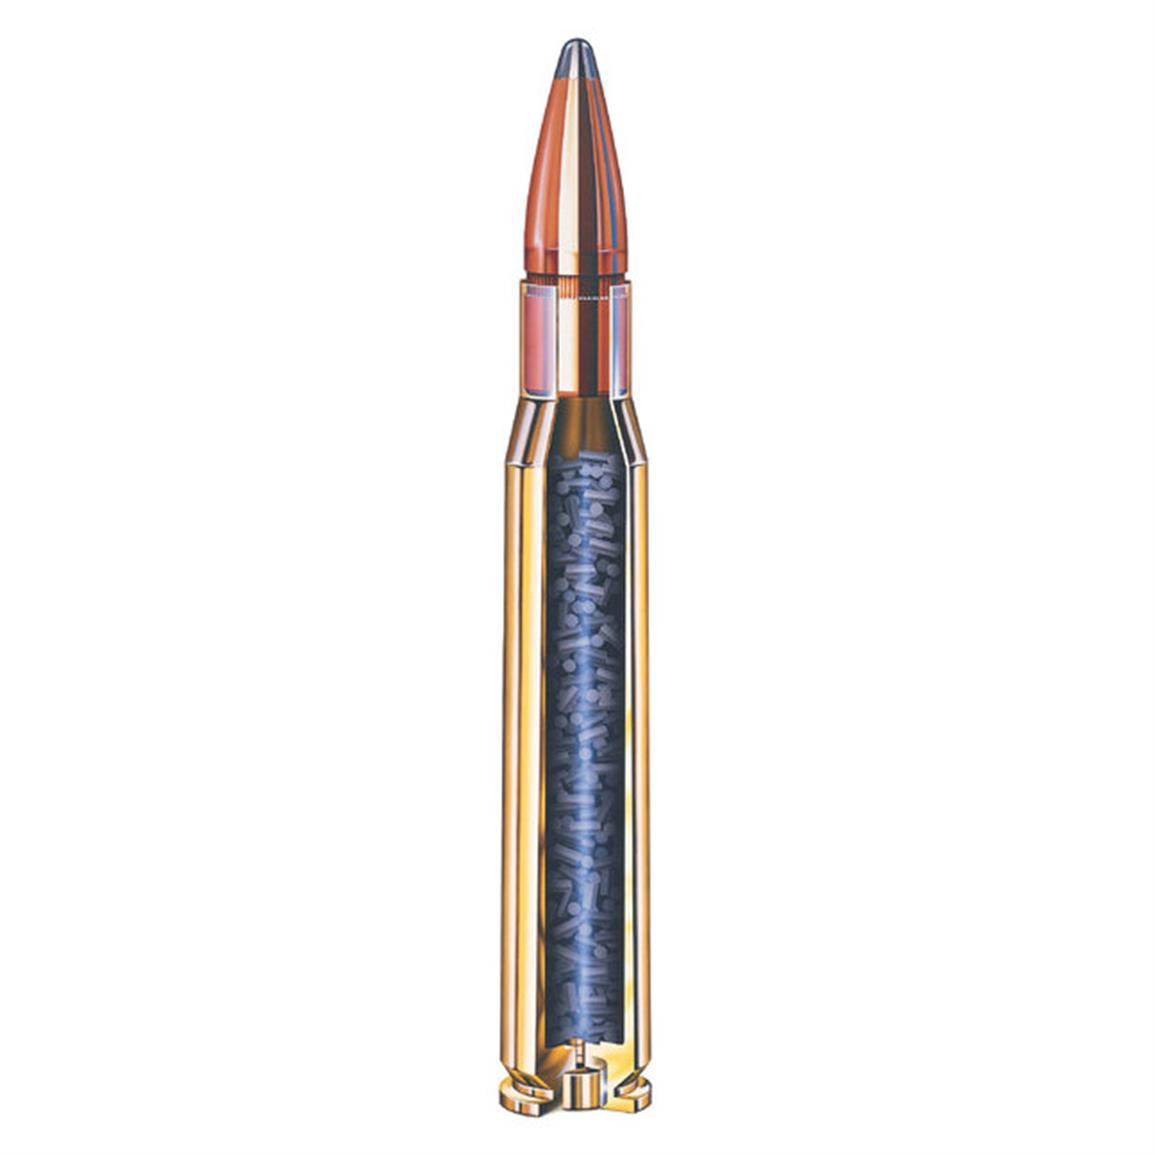 Loaded with Interlock bullets that penetrate deeply while giving you great expansion